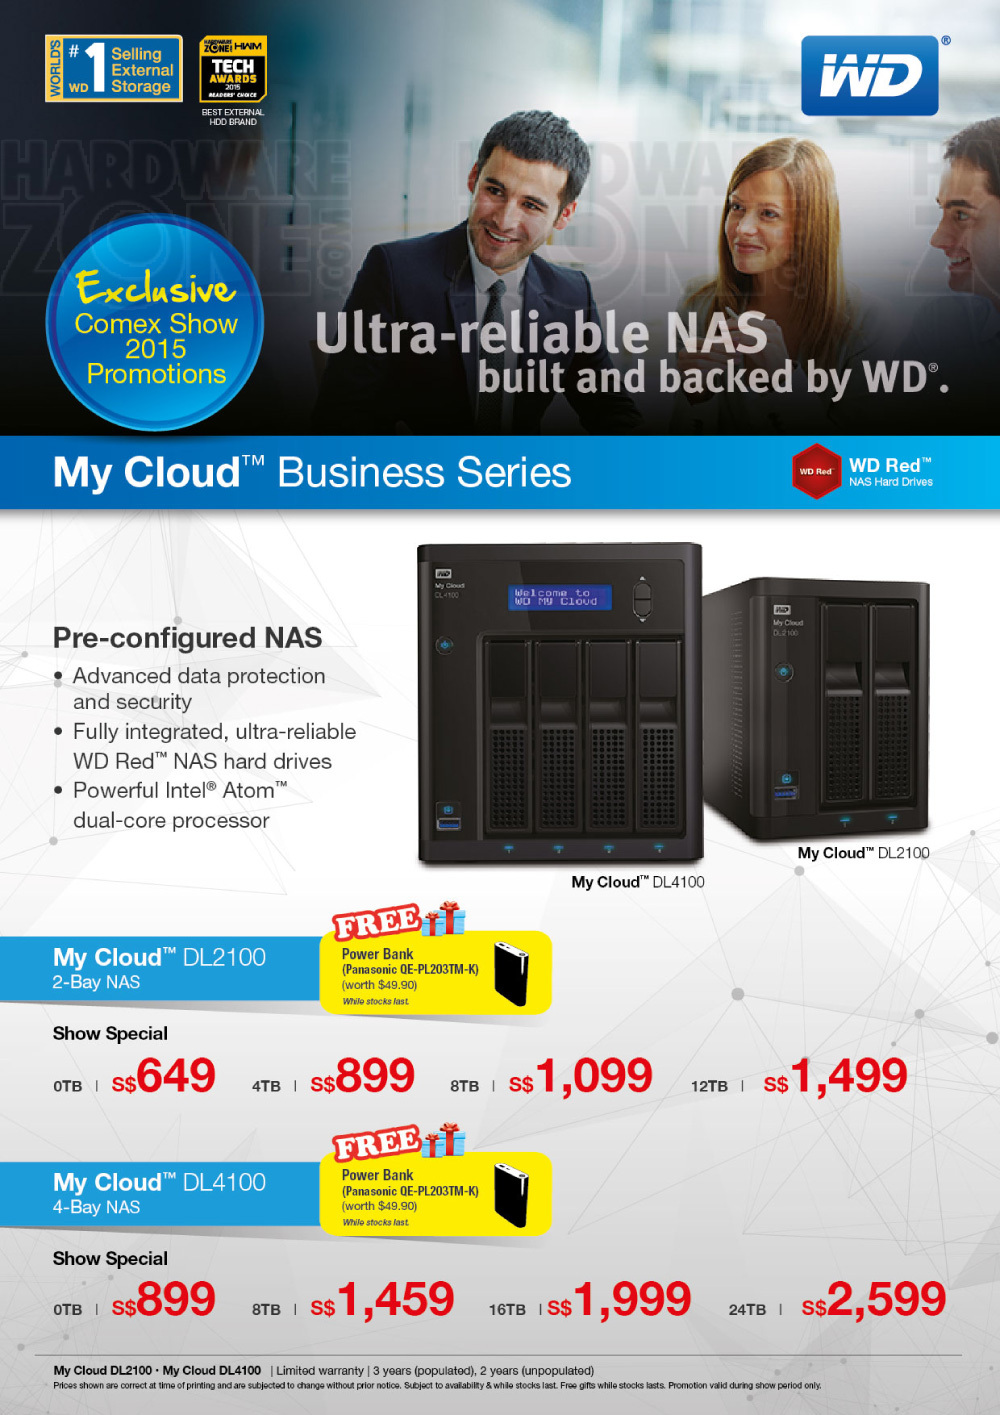 WD MyCloud Business series NAS Brochures from COMEX 2015 Singapore